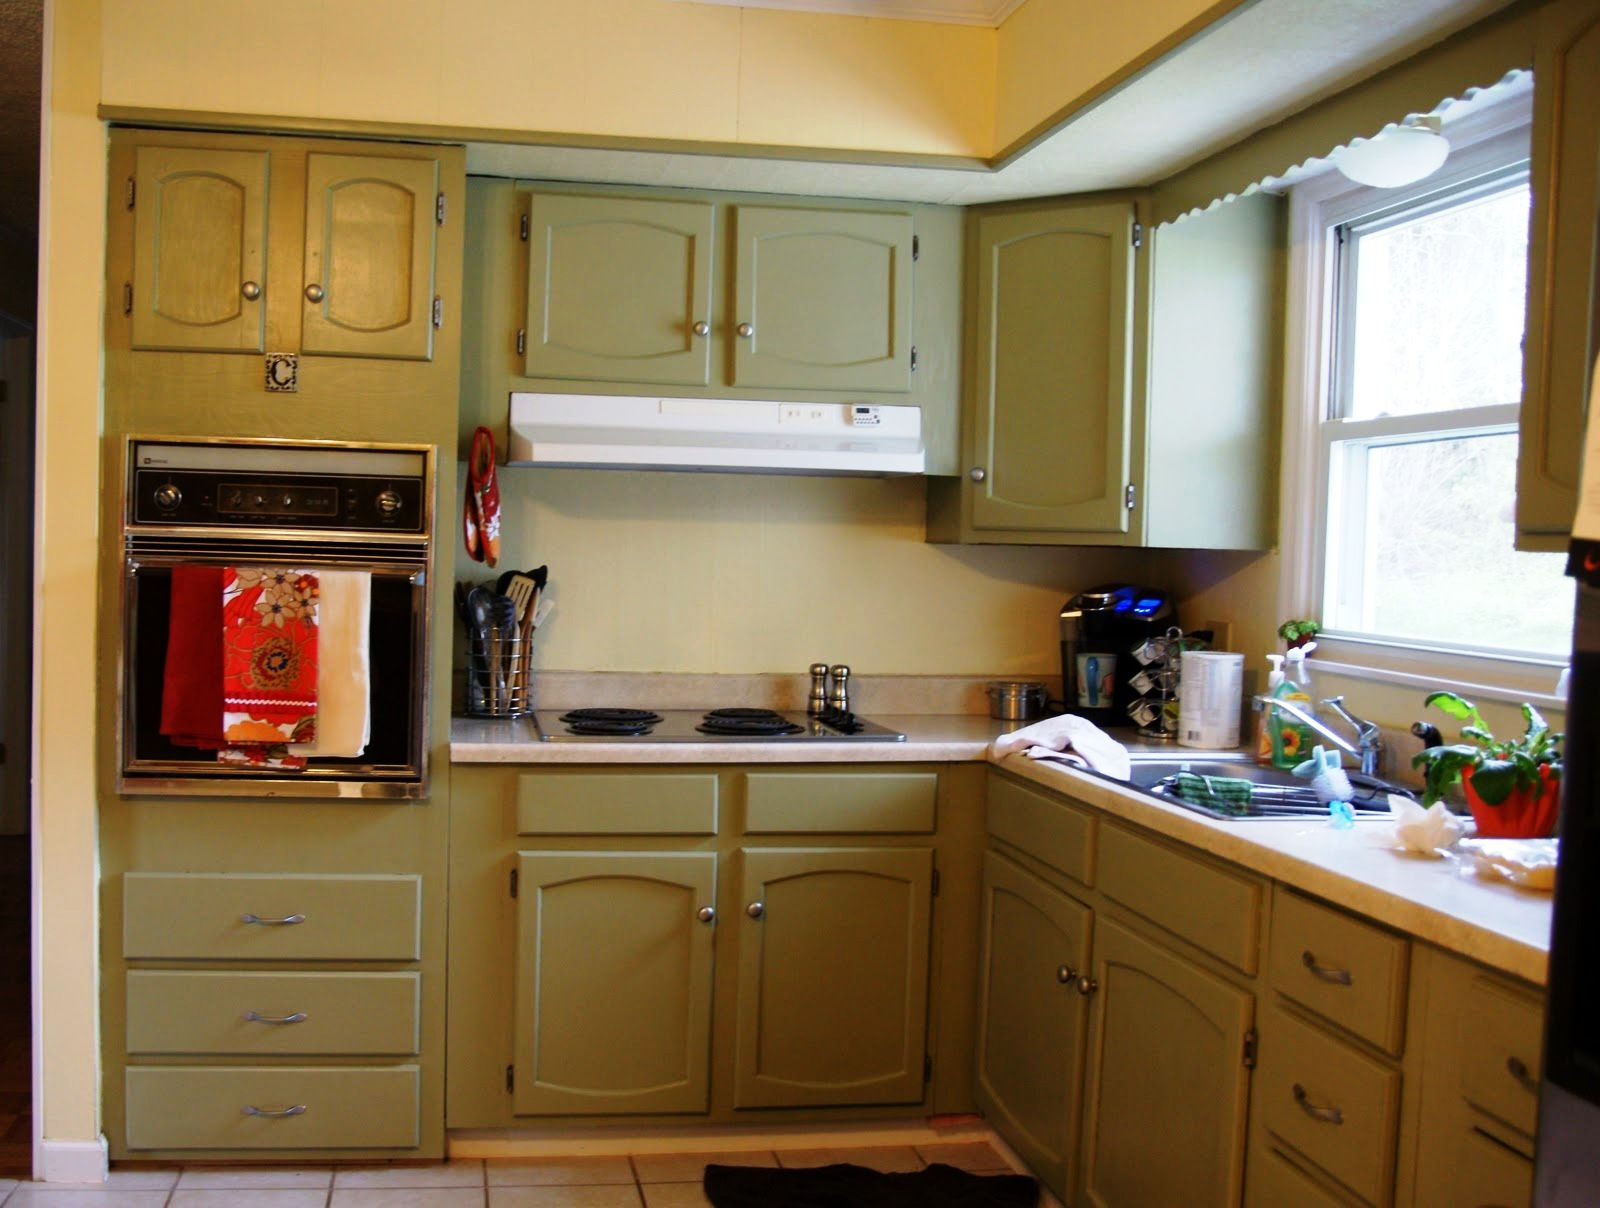 How to Remove Old Kitchen Countertops | DISPATCH JUNK REMOVAL